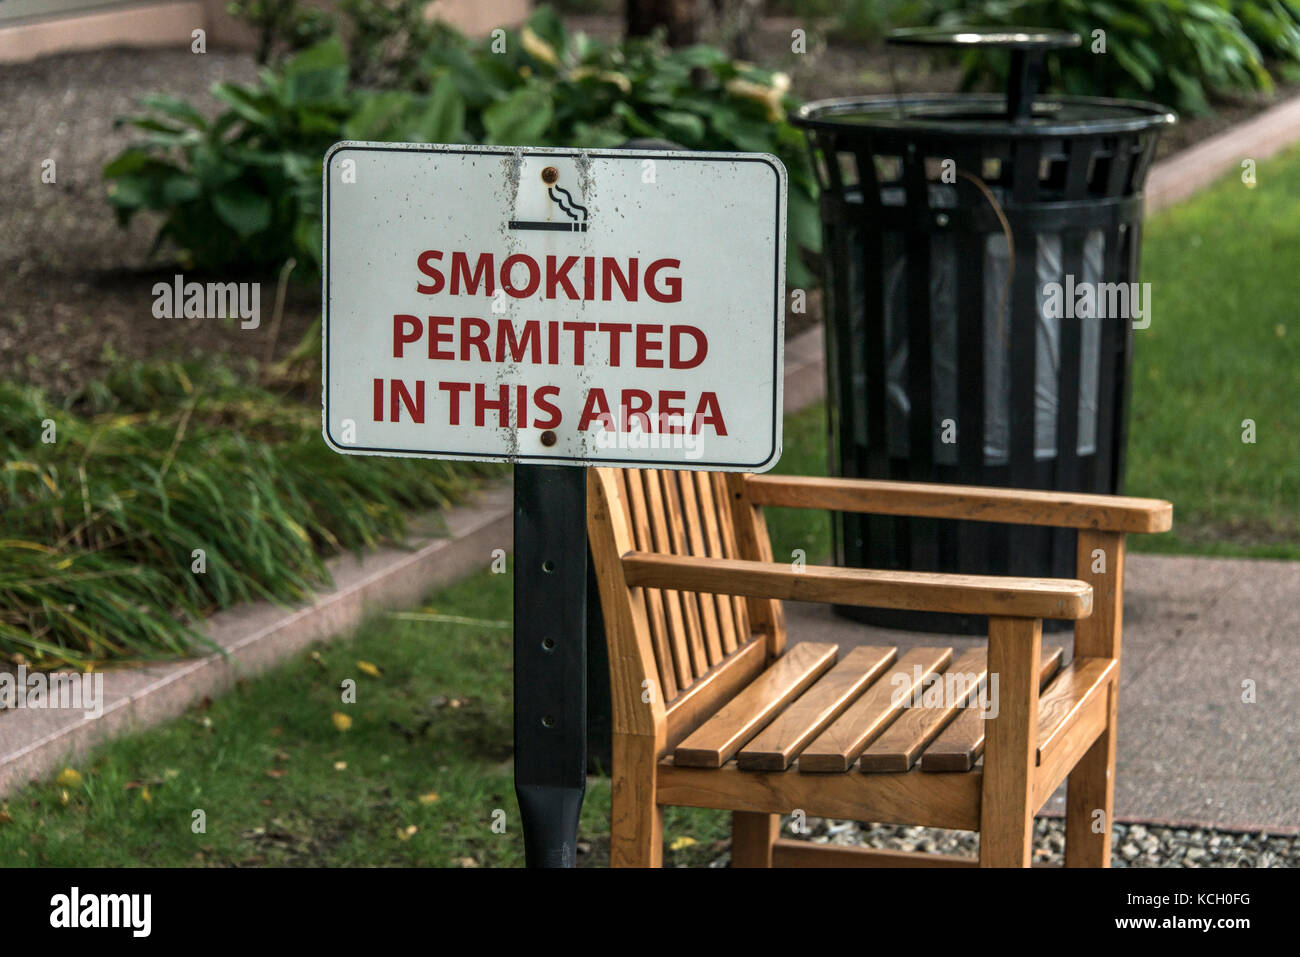 Designated smoking area Outdoor bench in smoking zone permitted - Stock Image